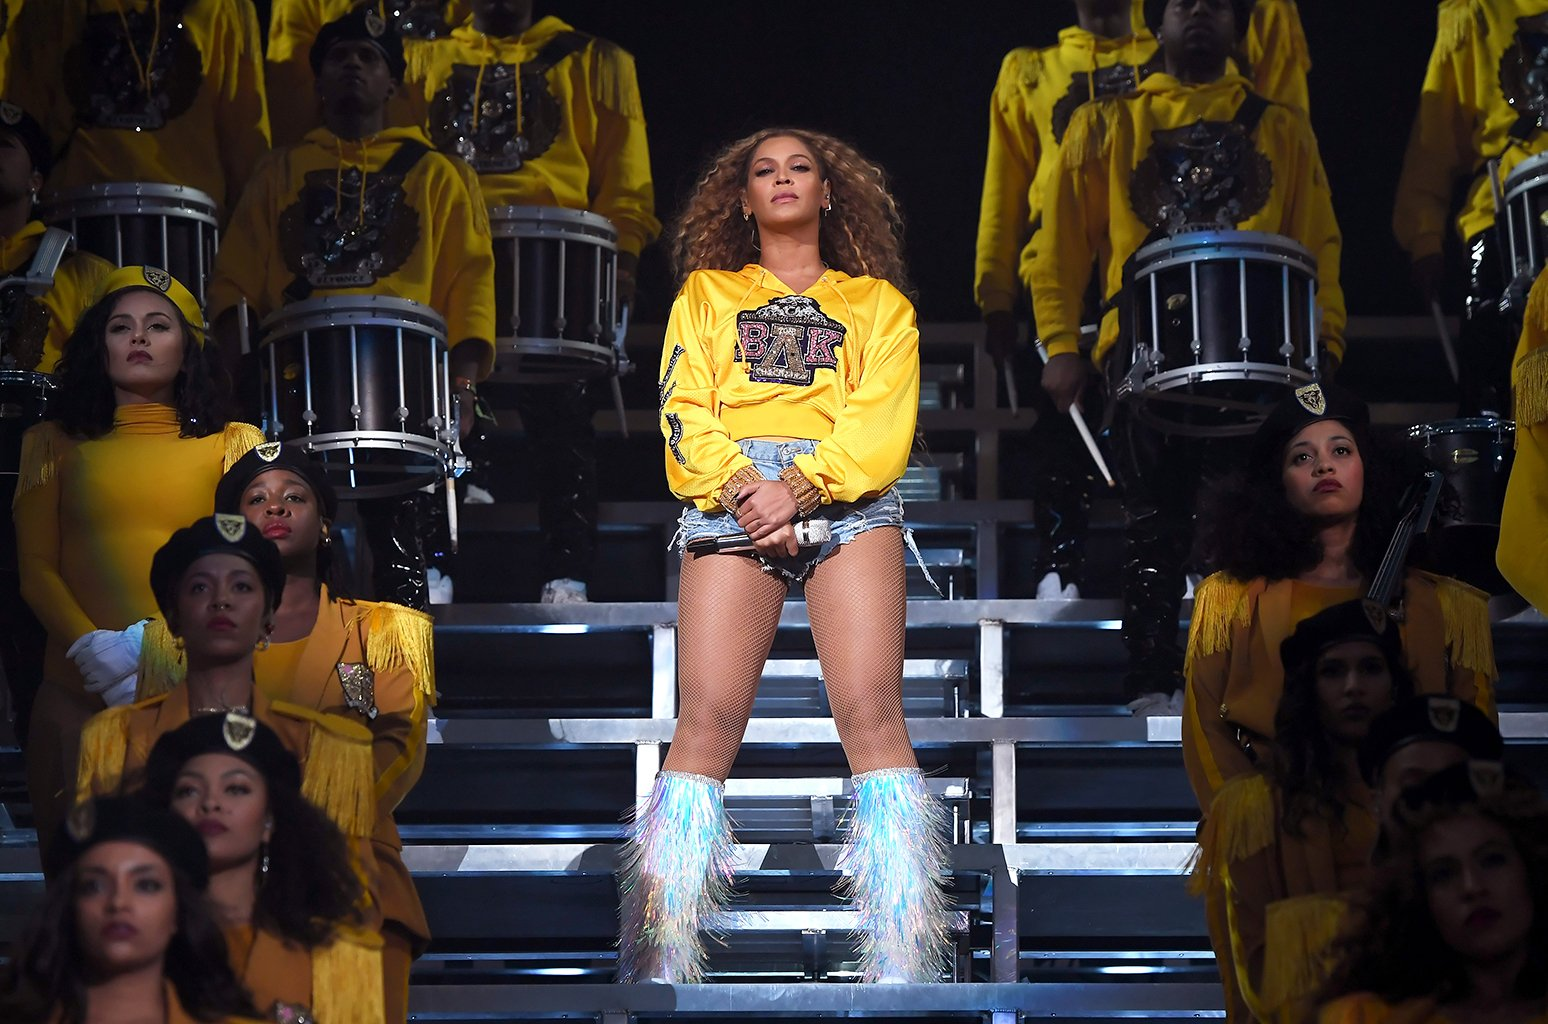 Beyonce's #Coachella set is the most-viewed performance on YouTube live stream https://t.co/0s7WmaqOSH https://t.co/UTFMEfBRIT